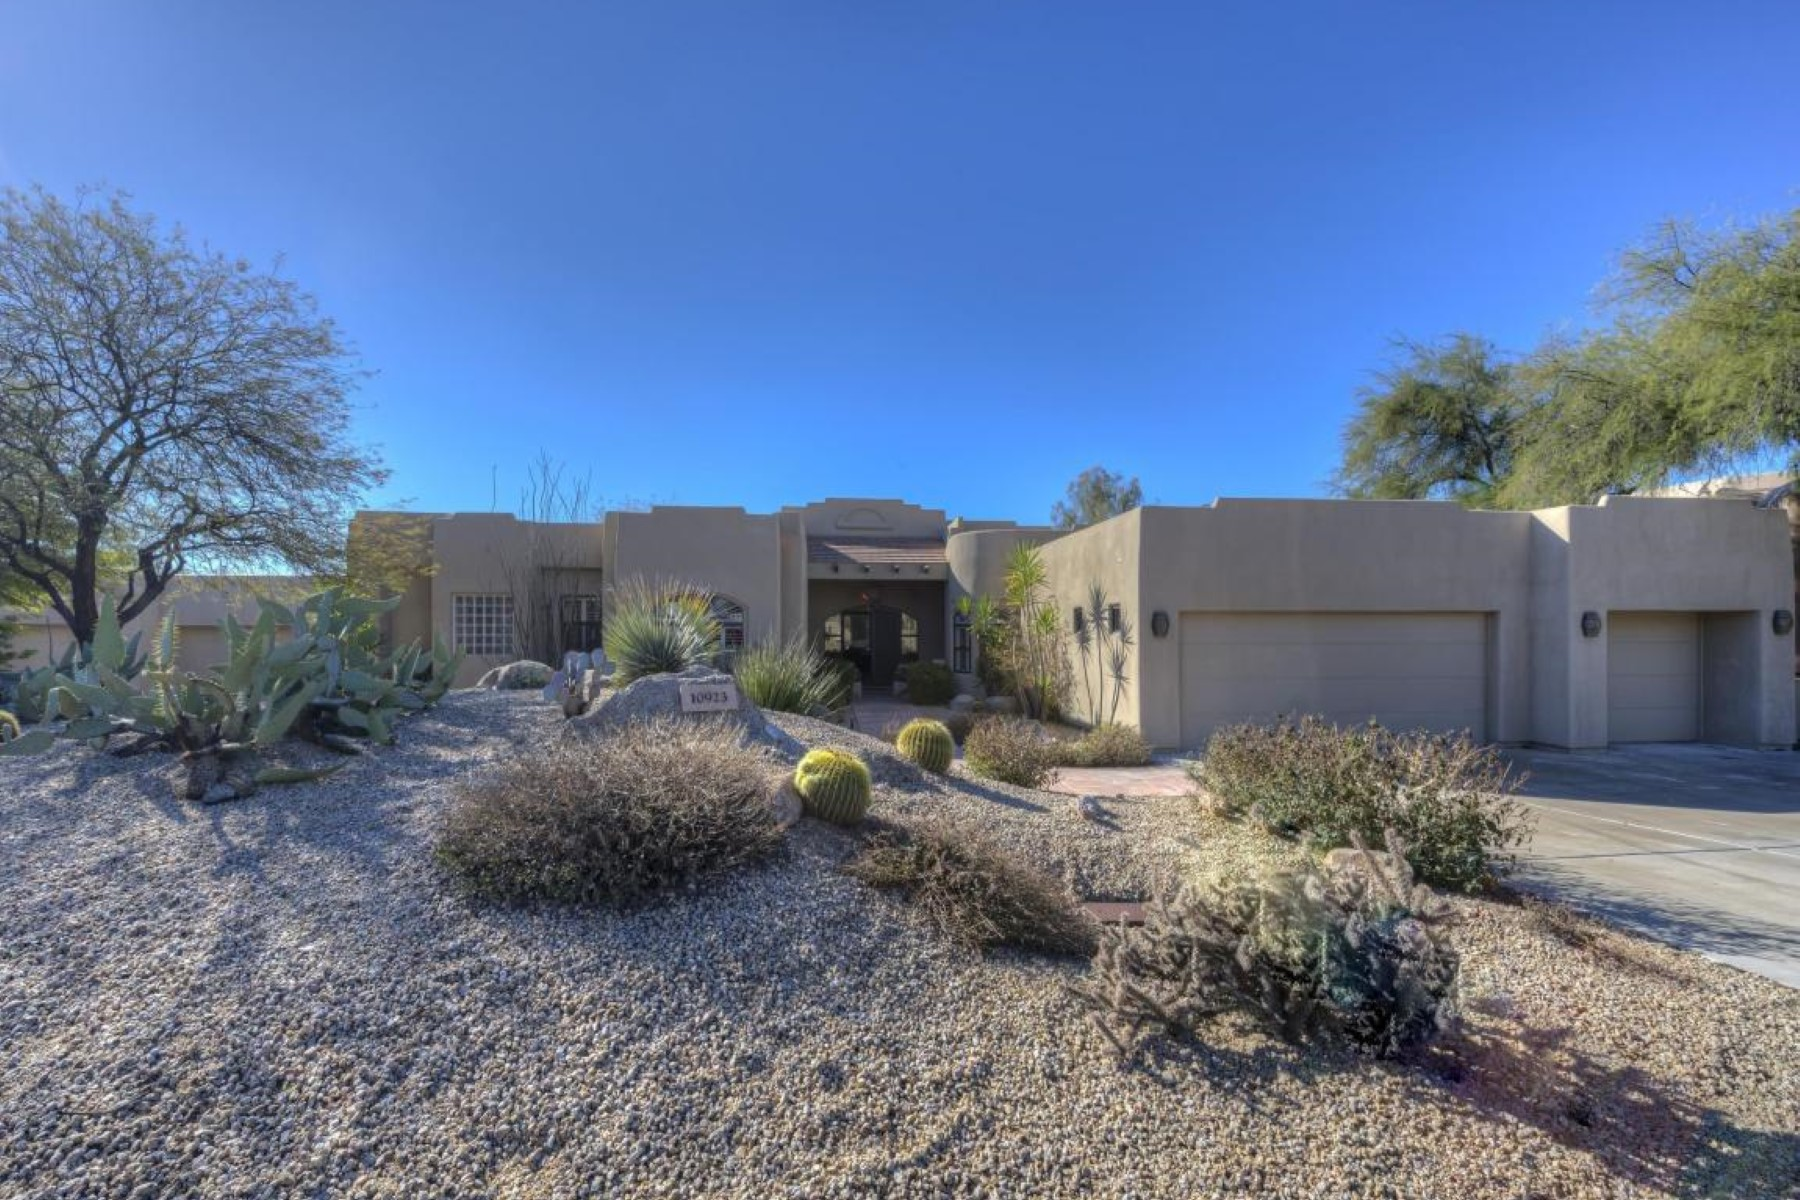 Condominium for Sale at Gorgeous home in the privately gated subdivision of Candlewood Estates 10923 E Sutherland Way Scottsdale, Arizona, 85262 United States